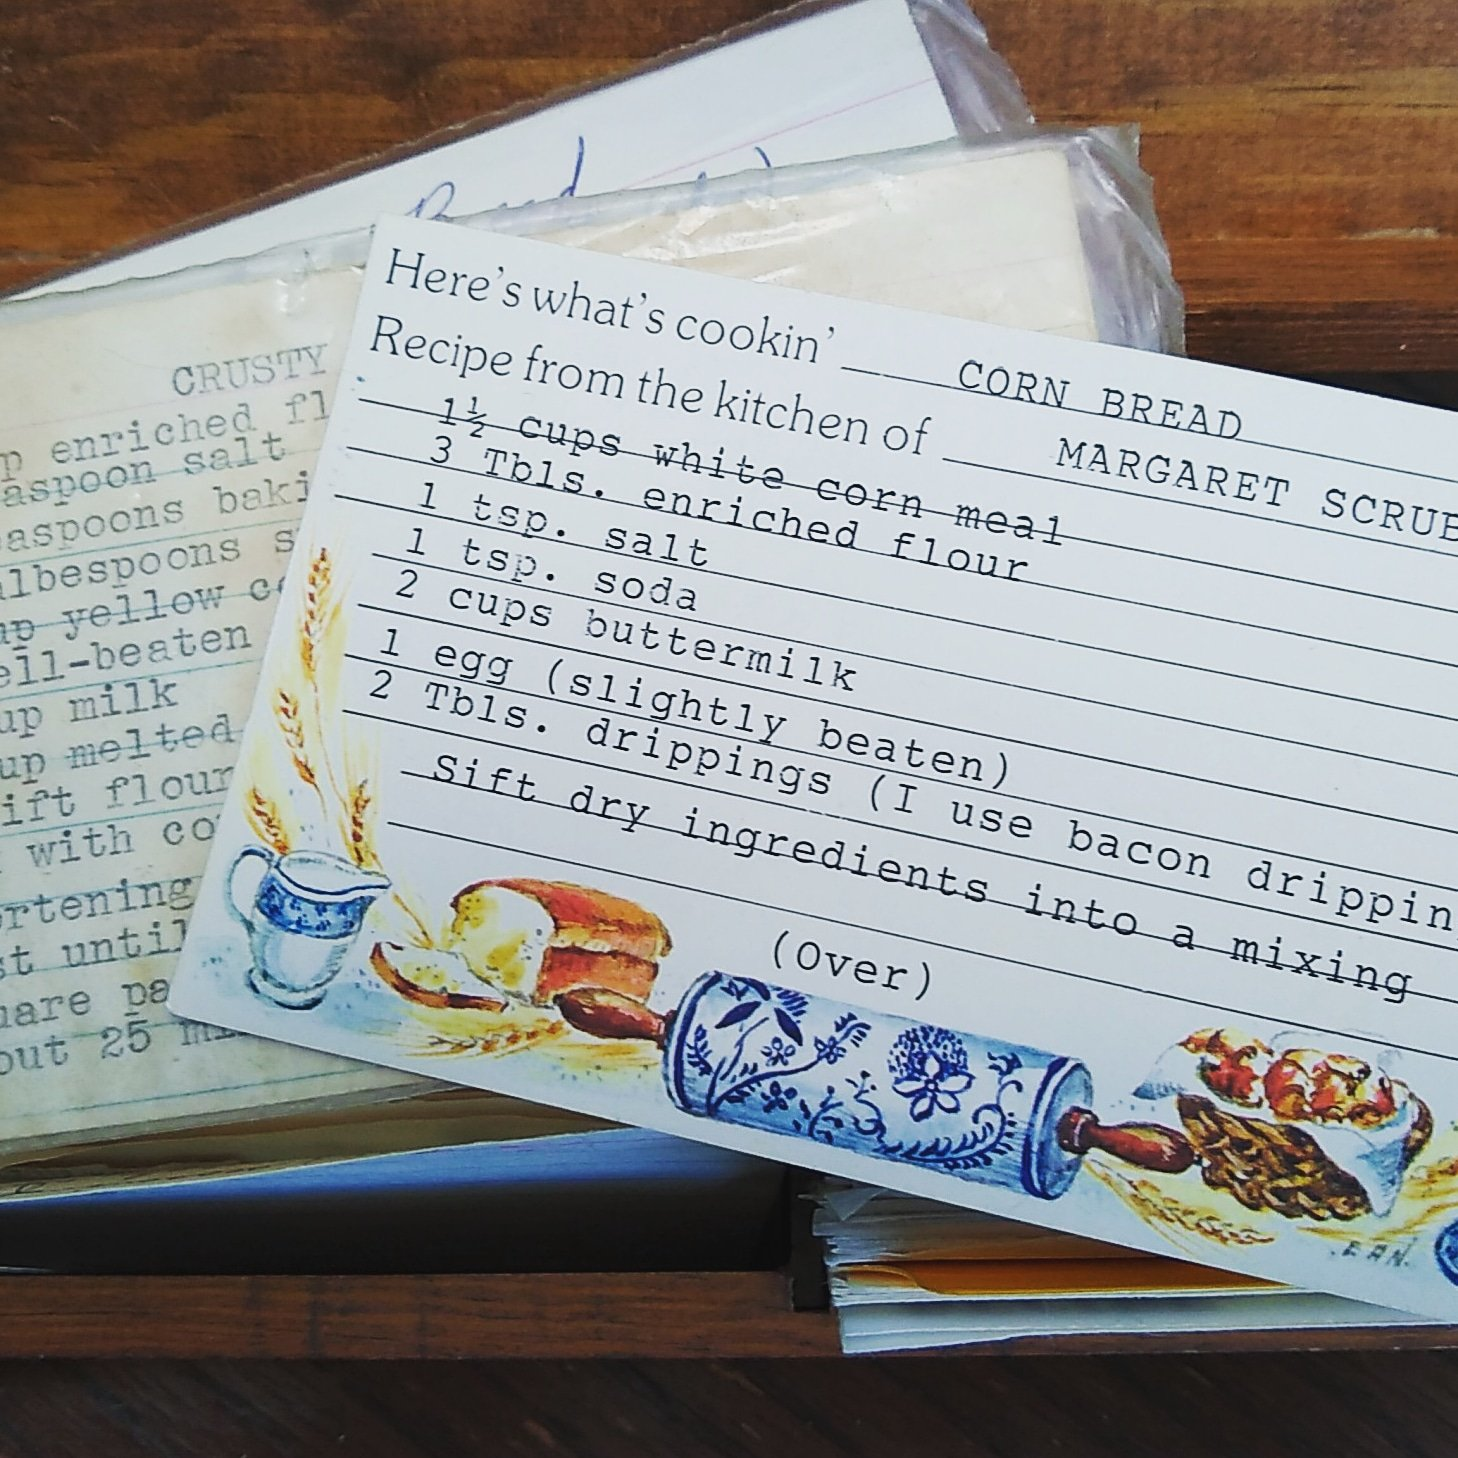 Recipe, corn bread, recipe card